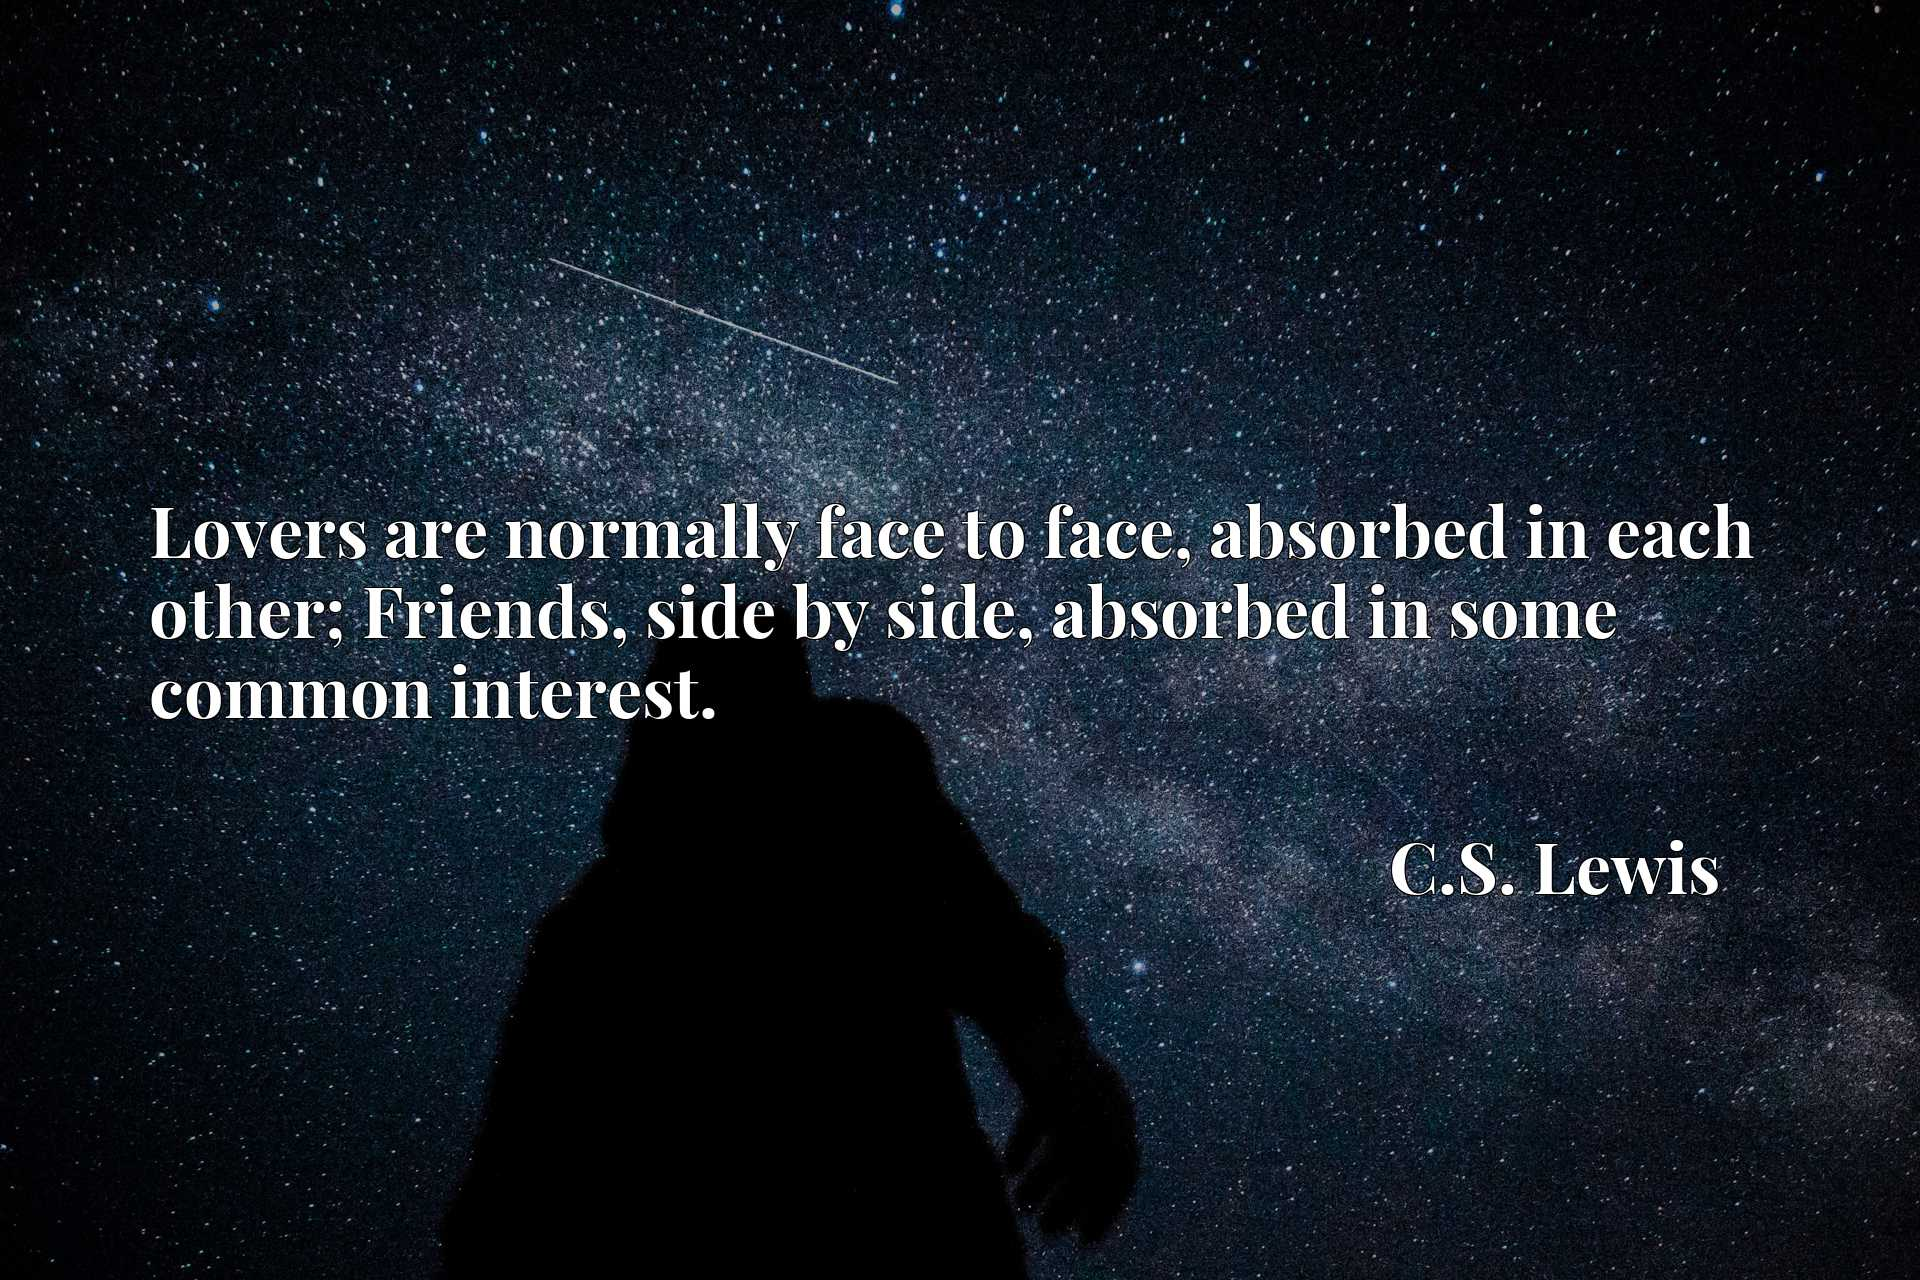 Lovers are normally face to face, absorbed in each other; Friends, side by side, absorbed in some common interest.